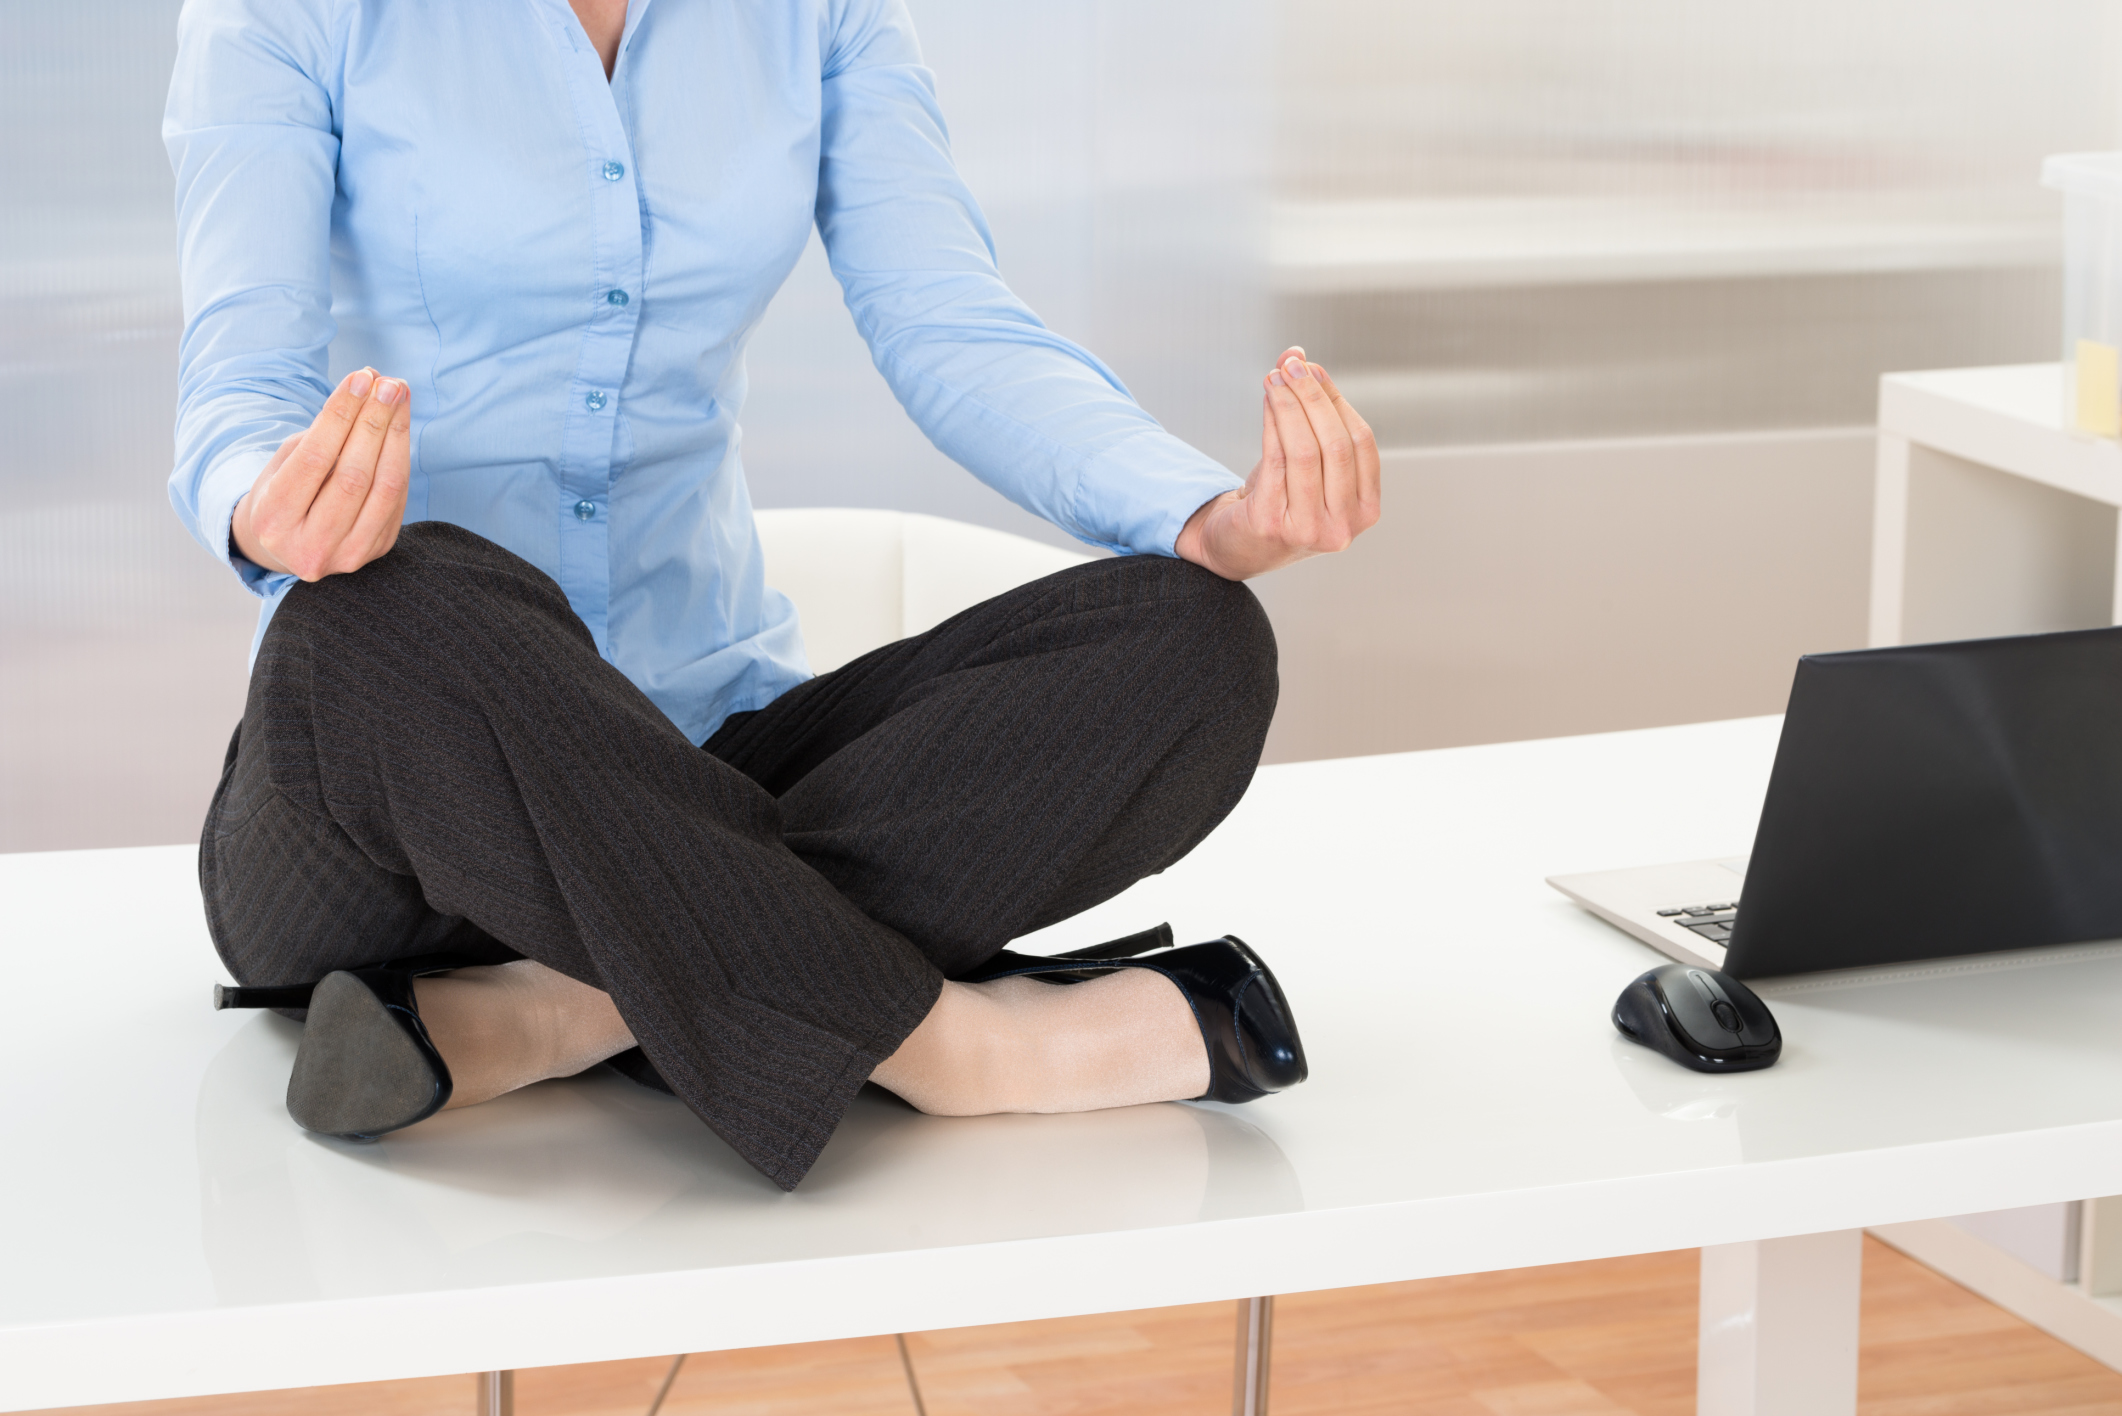 Stressful day? Work some yoga into your workday